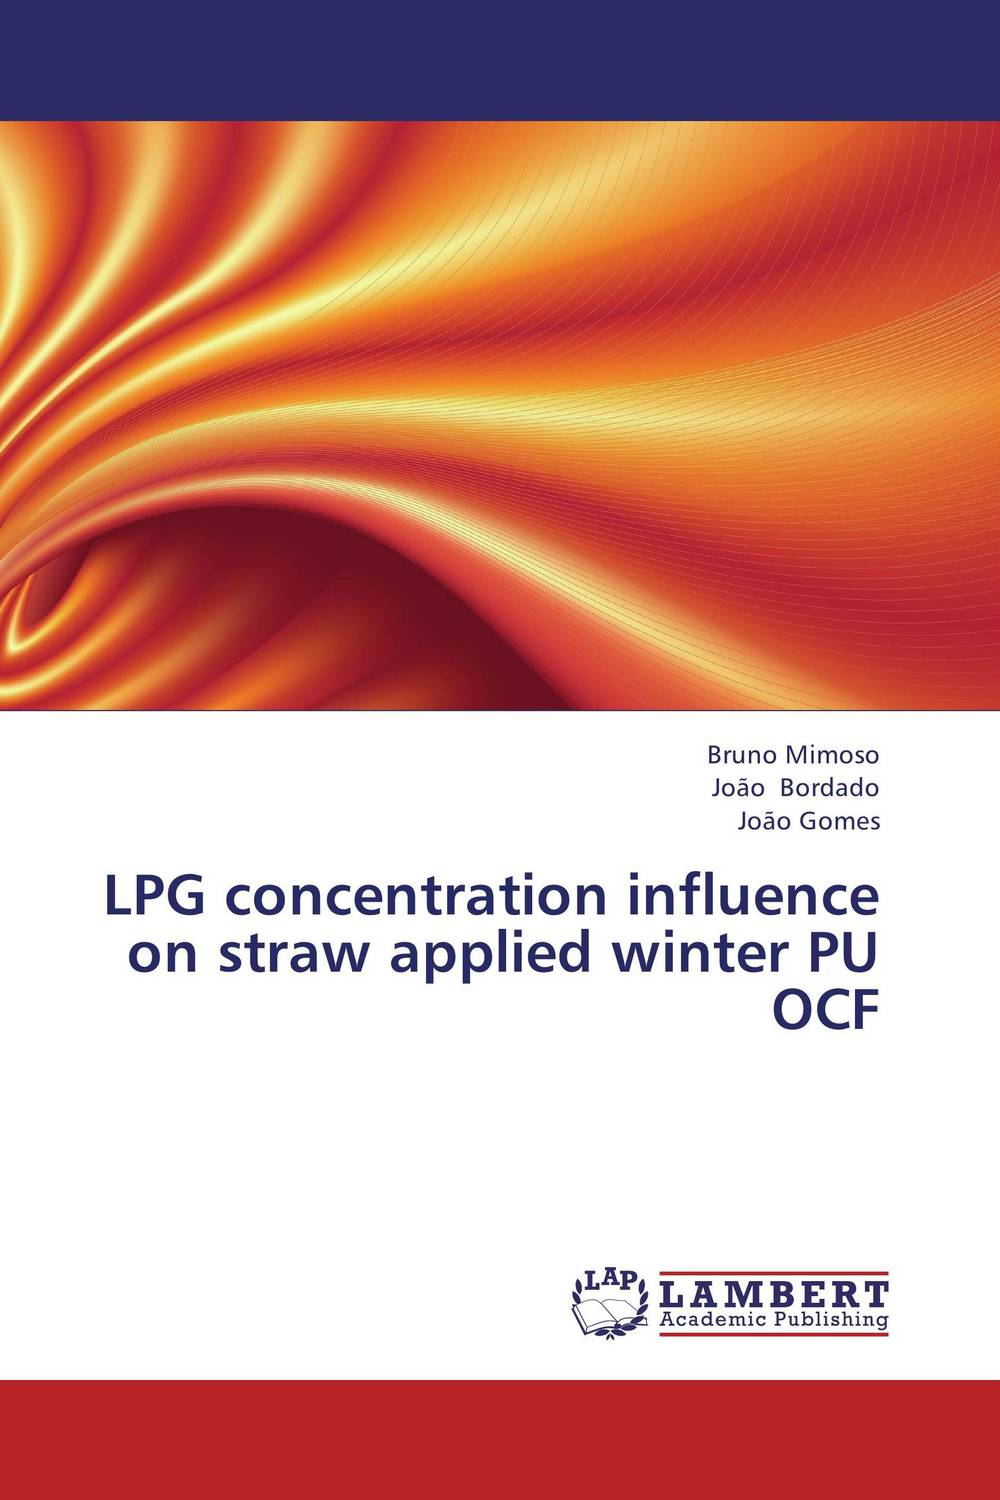 LPG concentration influence on straw applied winter PU OCF